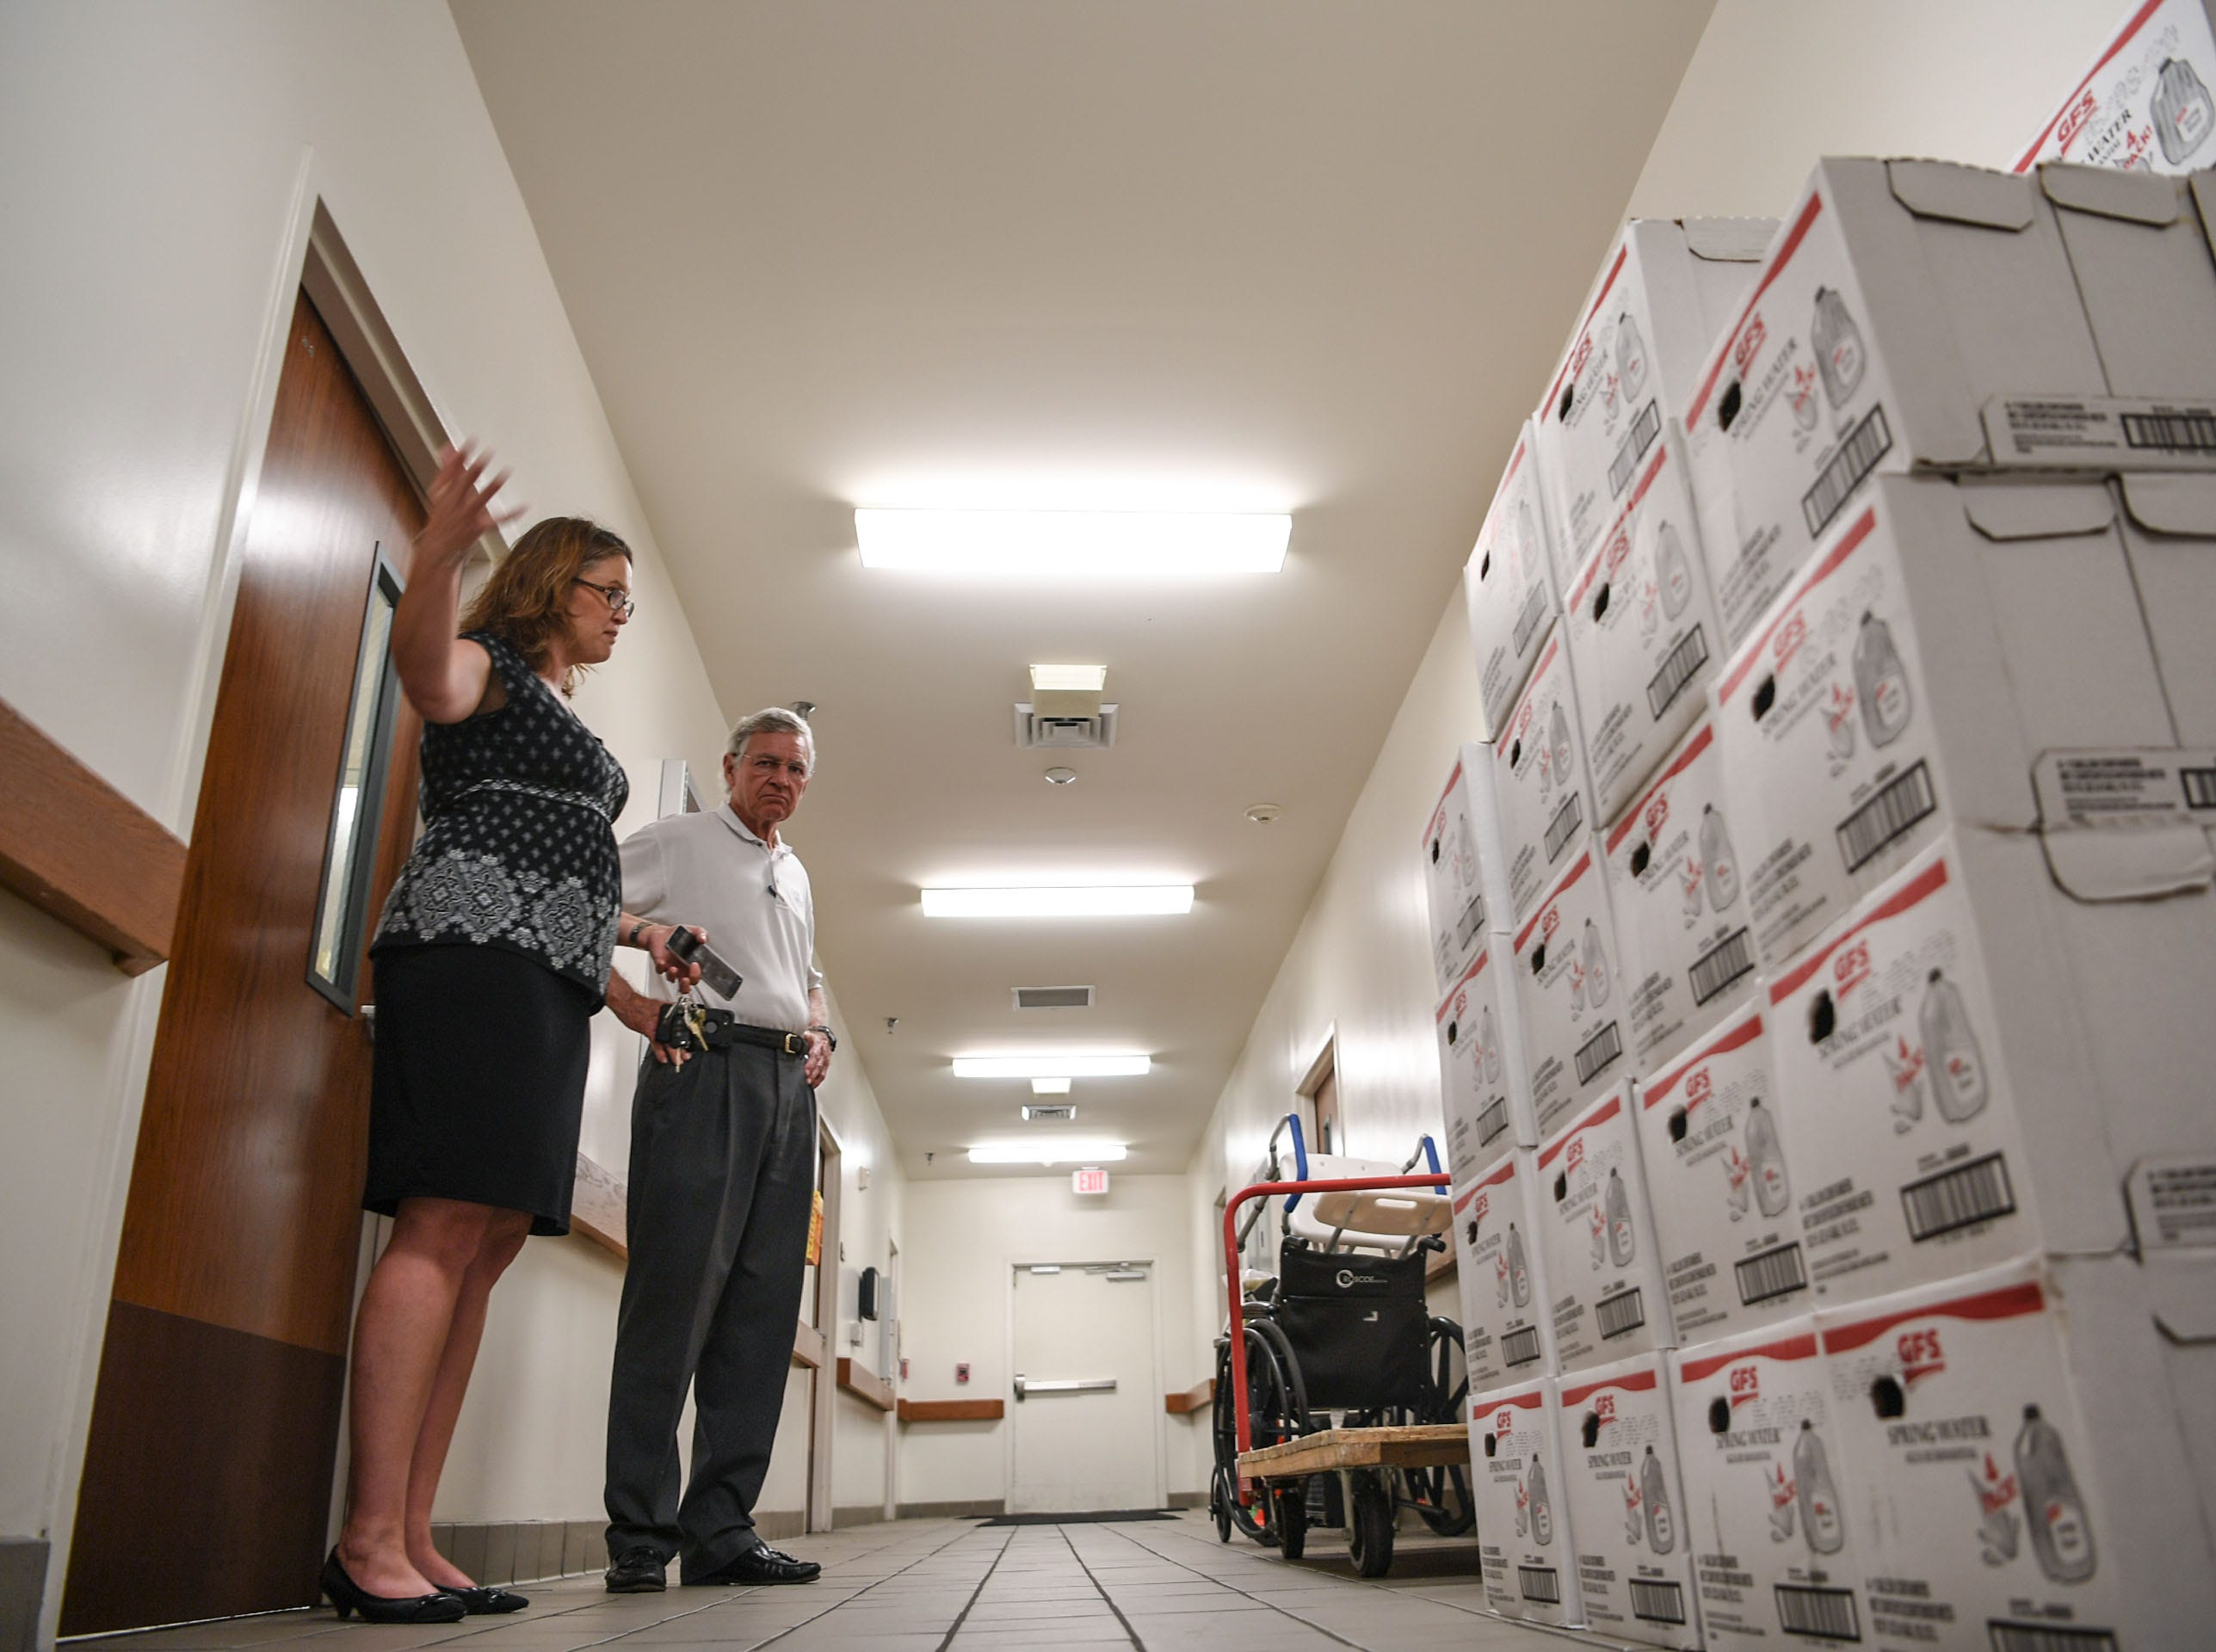 Bonnie Skobel, left, an administrator at the Trinity Grove Nursing Home in Wilmington, North Carolina, looks at supplies of water and food with Director John Frye, right, on Wednesday. Hurricane Florence is expected to reach Wilmington on Thursday night and Skobel said the home is ready for it. (Ken Ruinard / Greenville News / Gannett USA Today Network / 2018 )